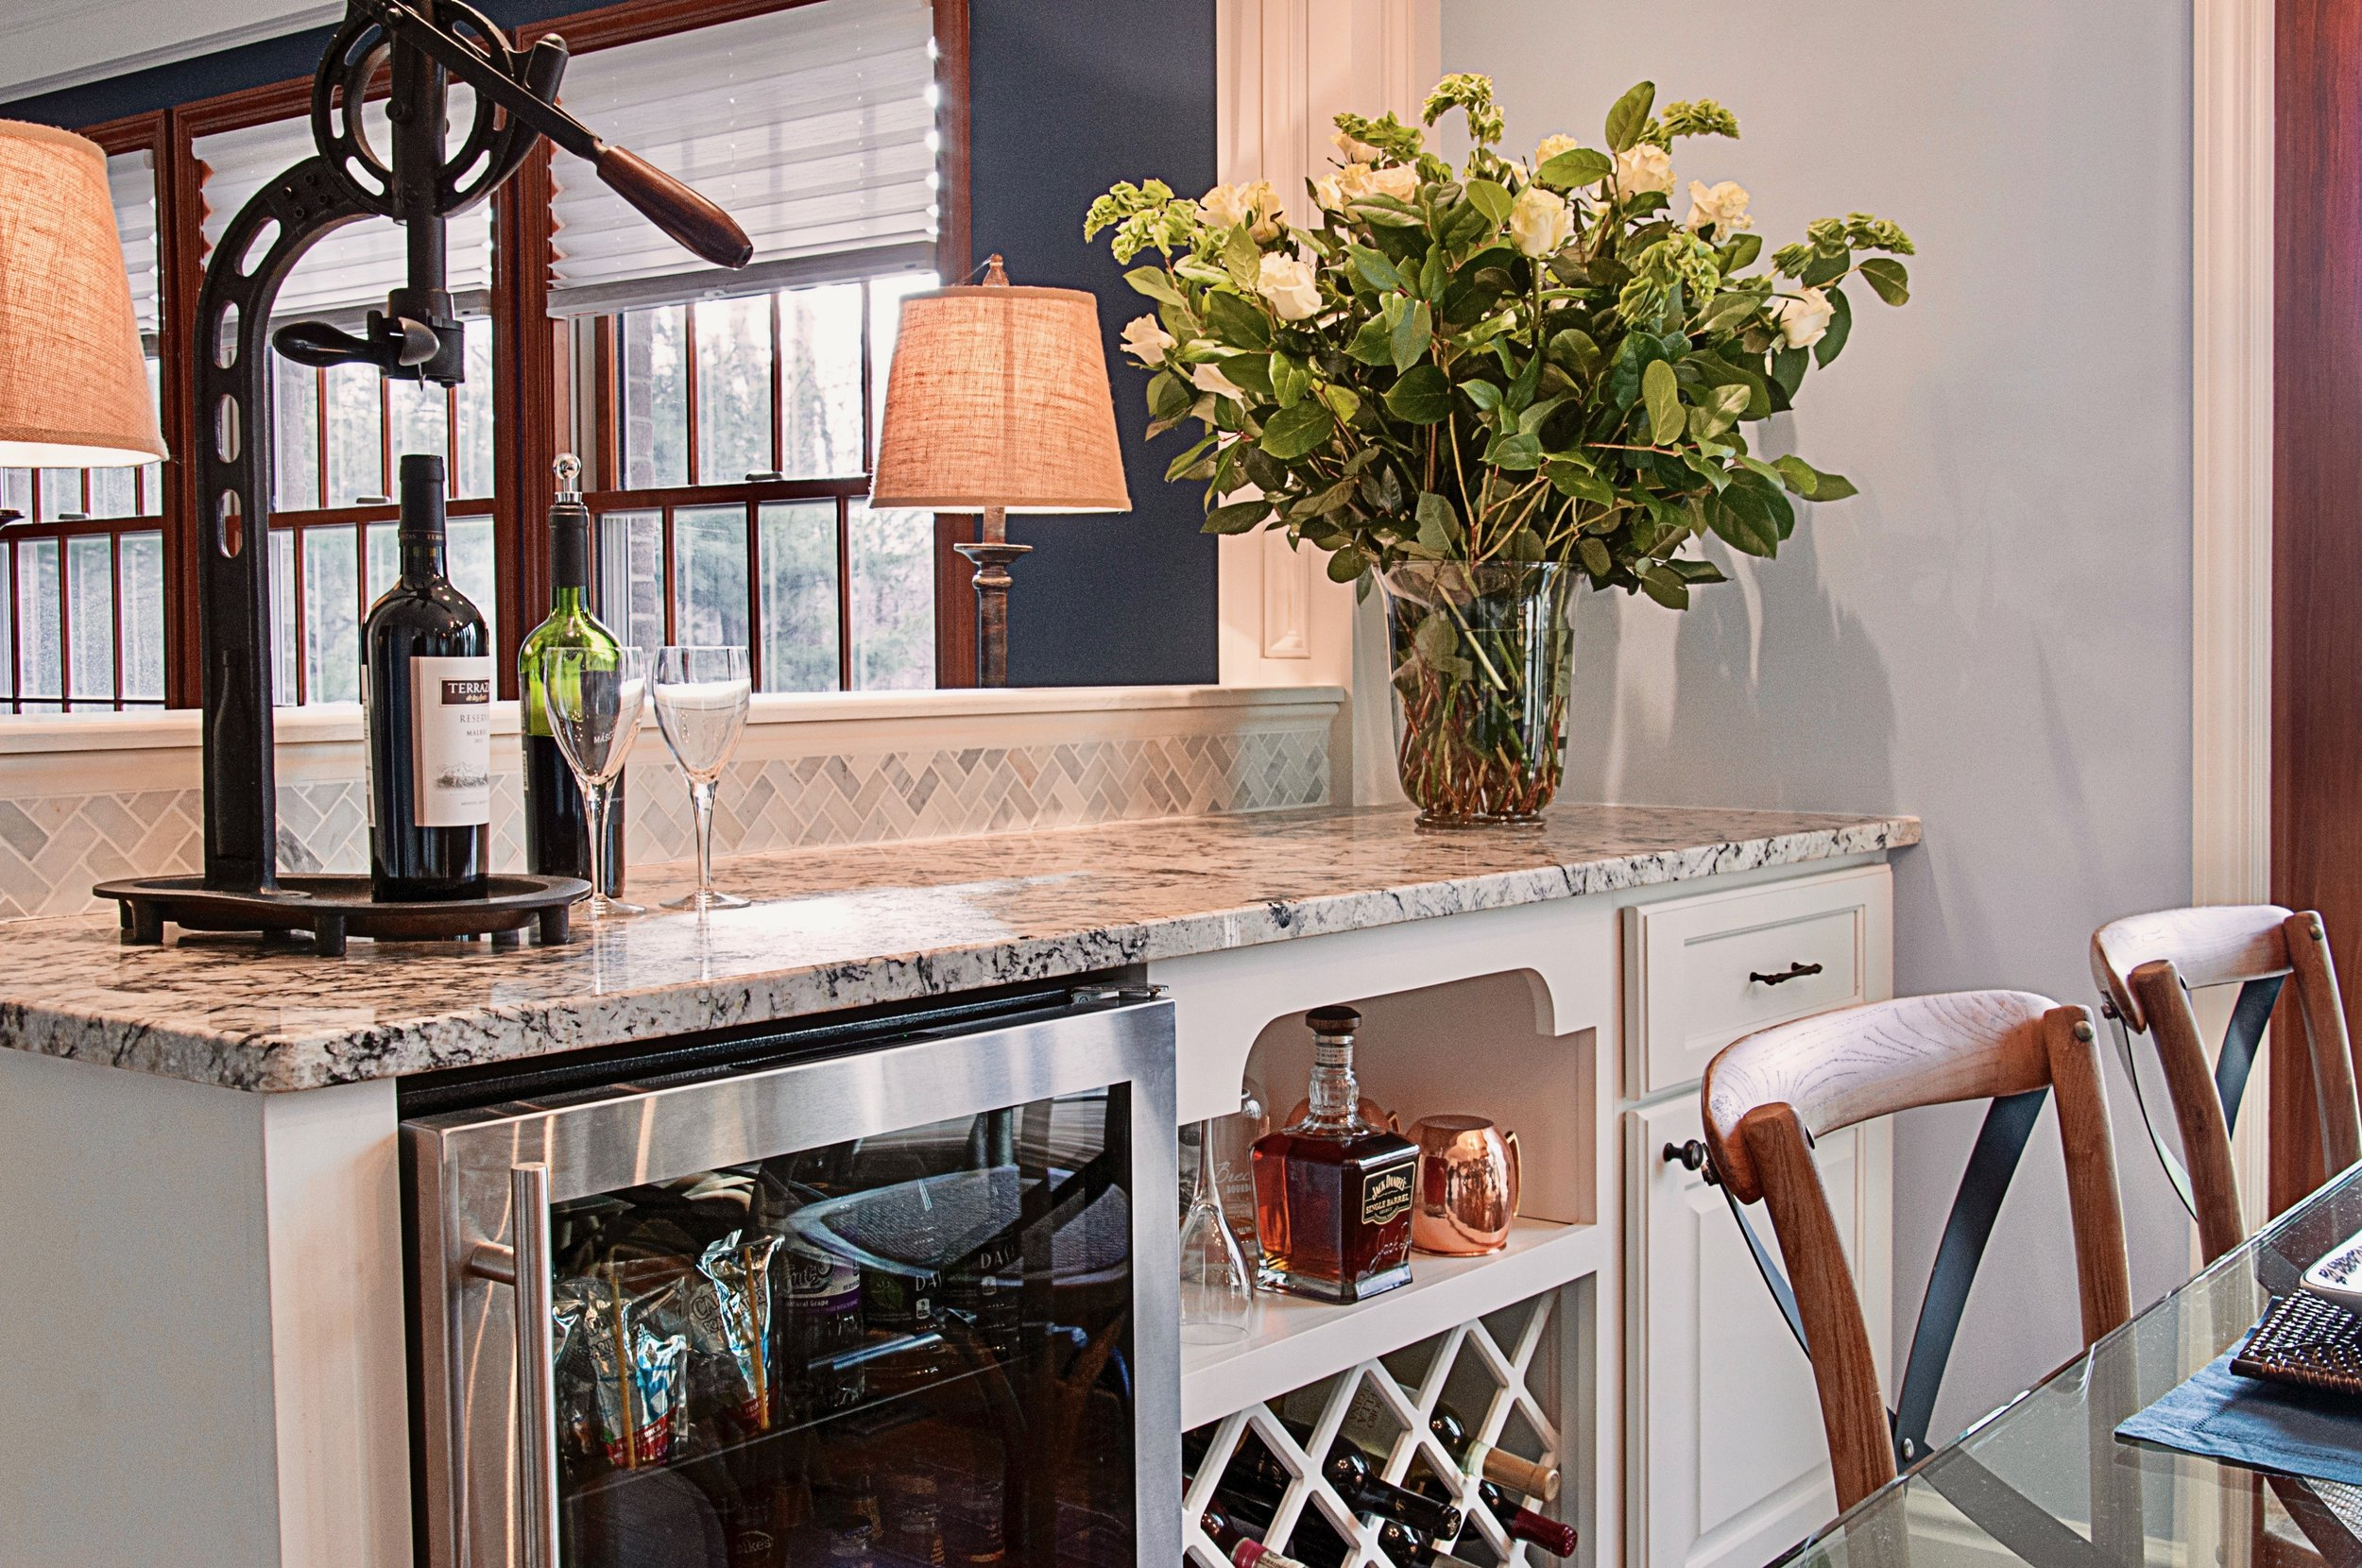 Kitchen remodel project in Franklin Park, PA by The Blackwood Group